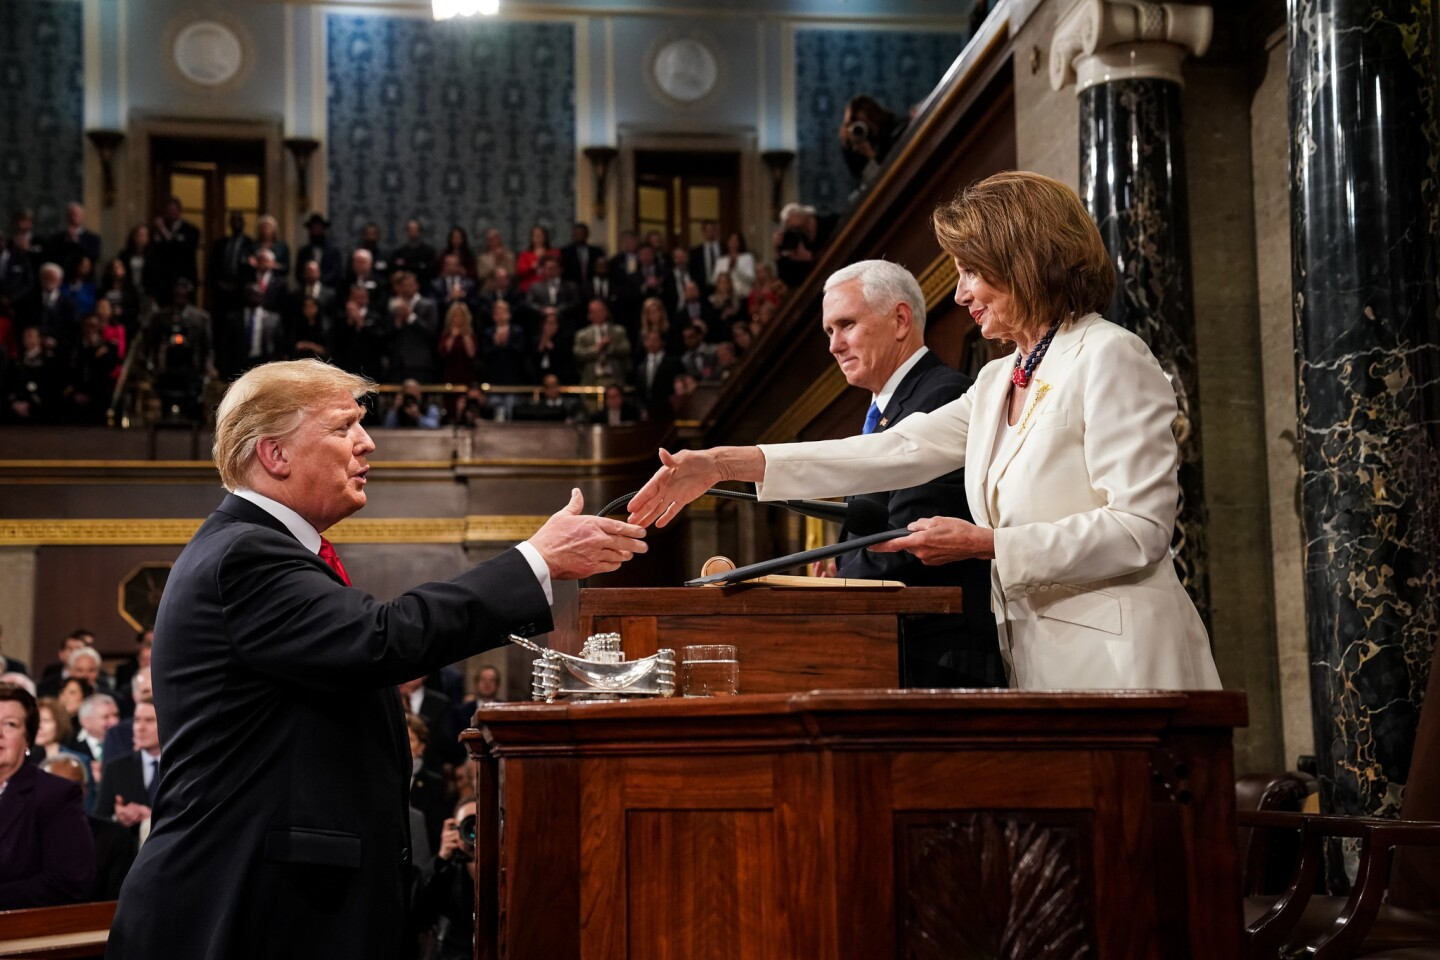 House Speaker Nancy Pelosi welcomes President Trump before his address.